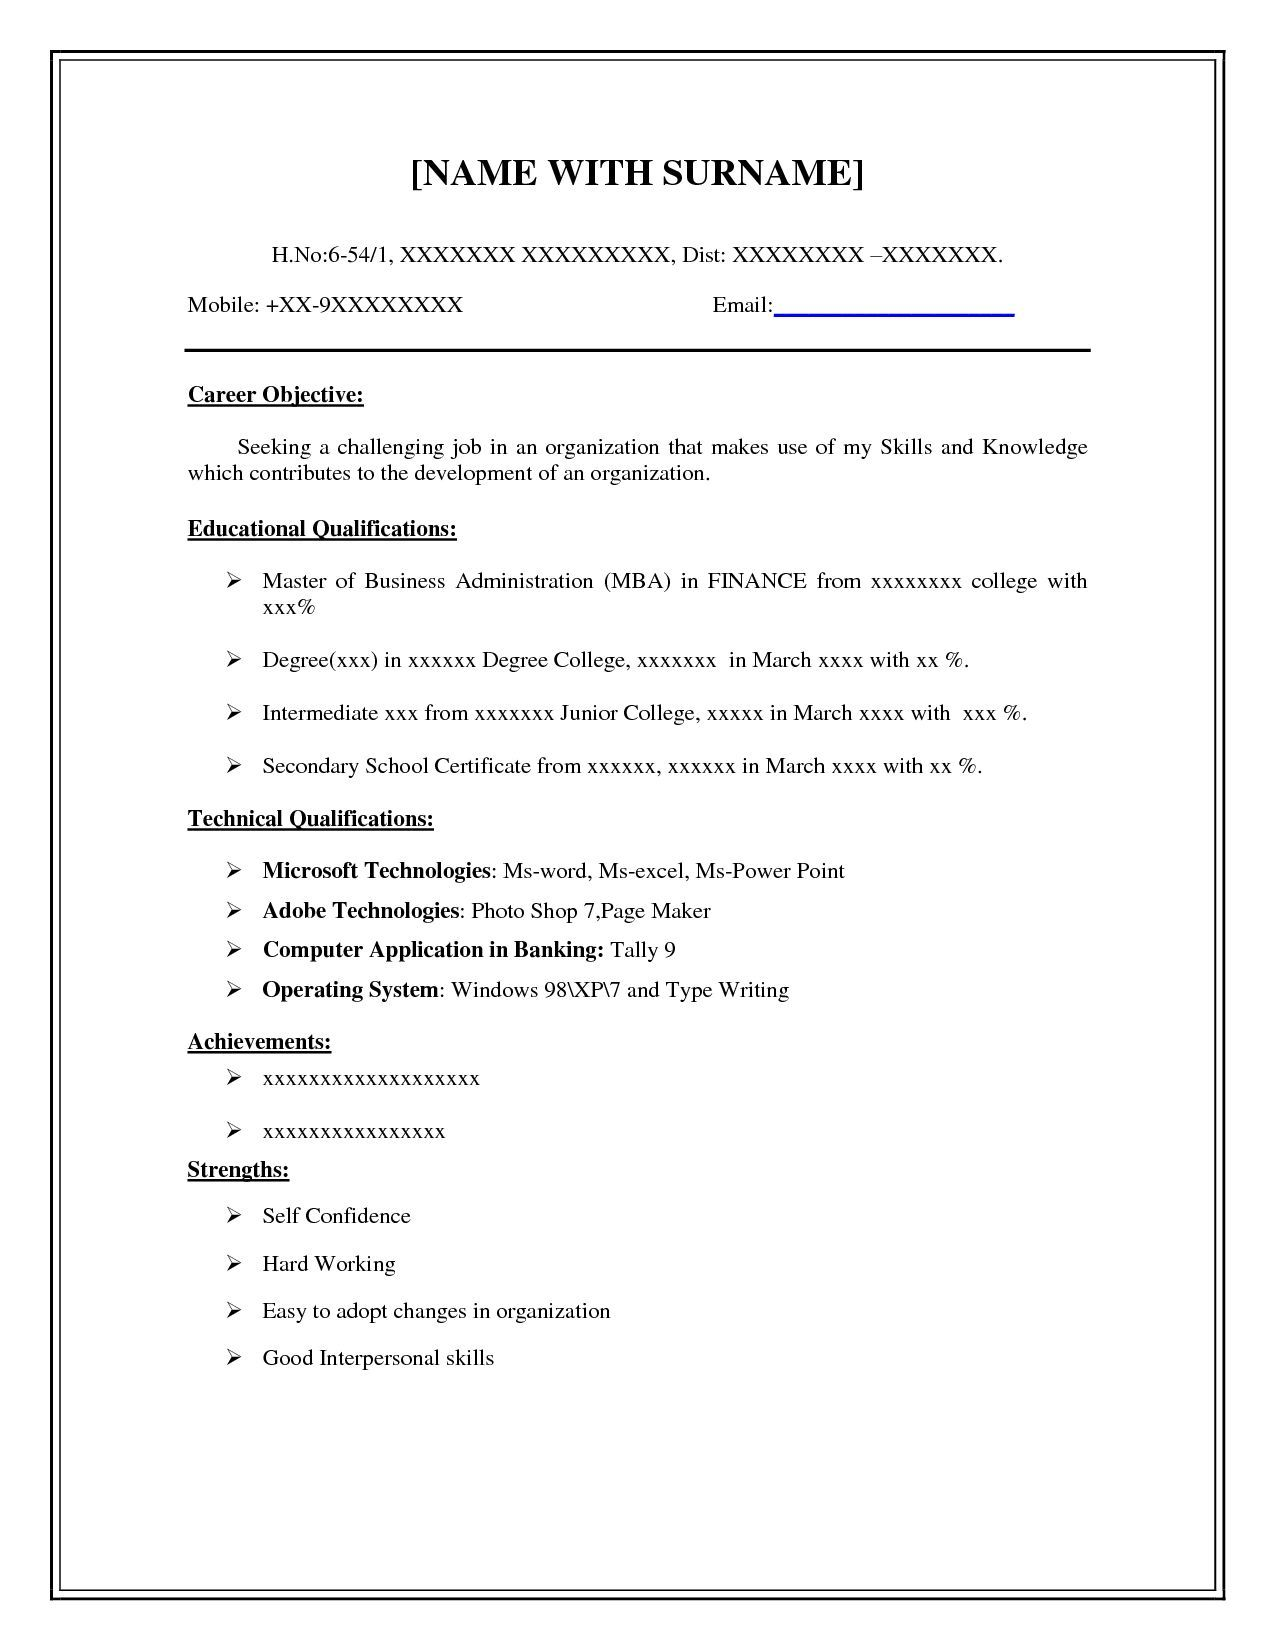 Easy And Free Resume Templates Resume Examples Basic Resume Simple Resume Template Resume Template Free